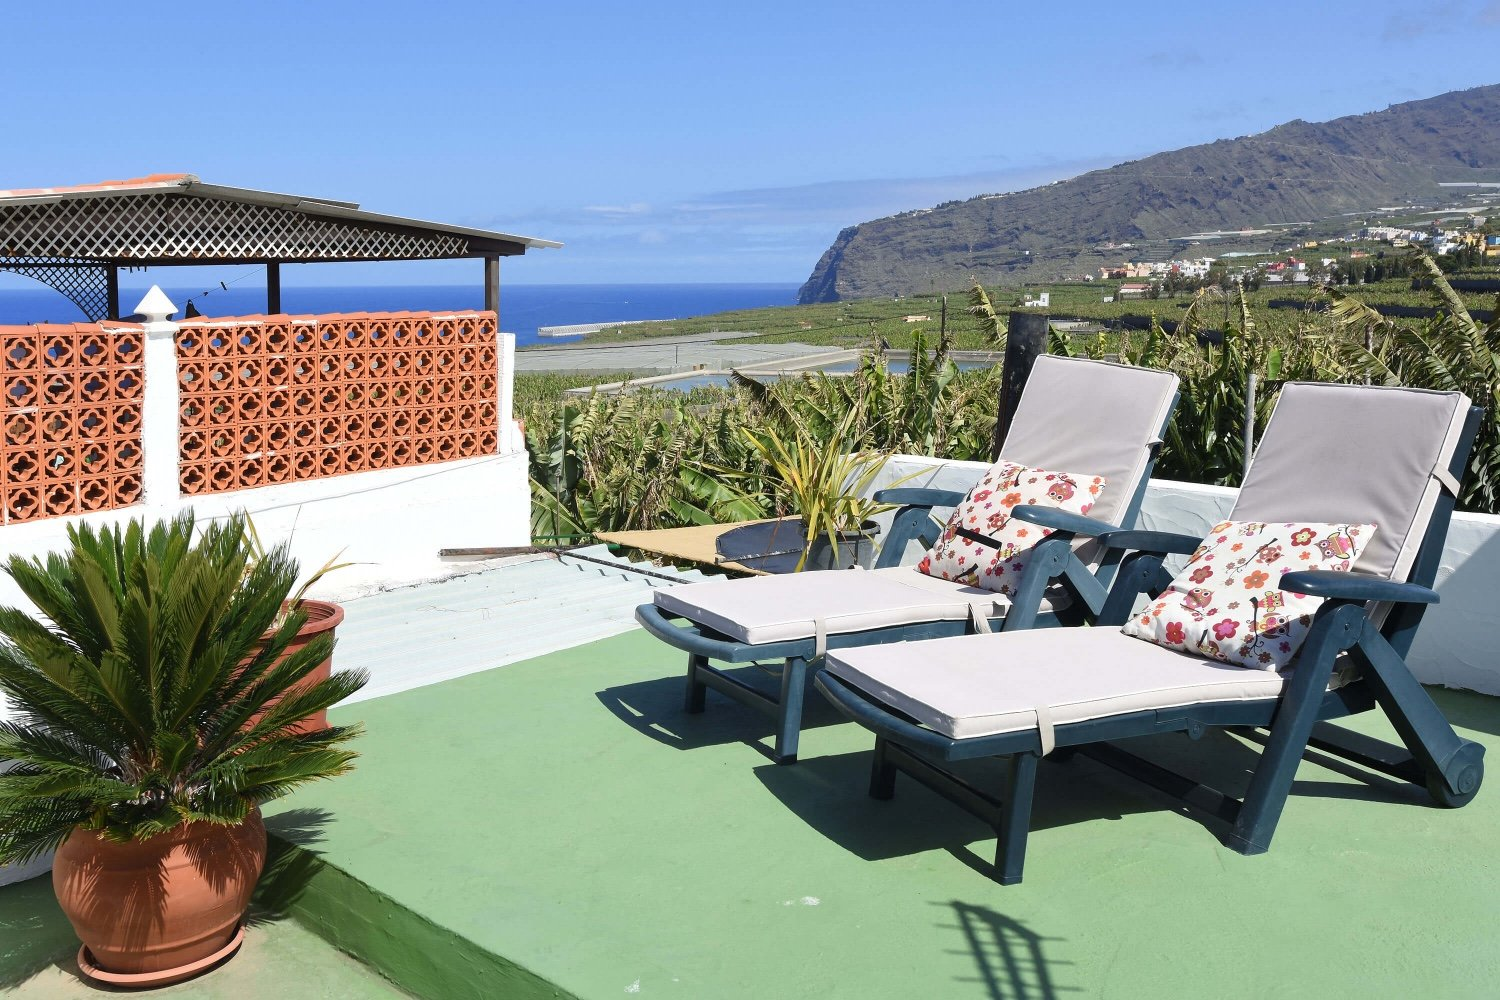 Typical rural house for 2 people with garden and nice roof terrace with wonderful views towards the sea and the mountains